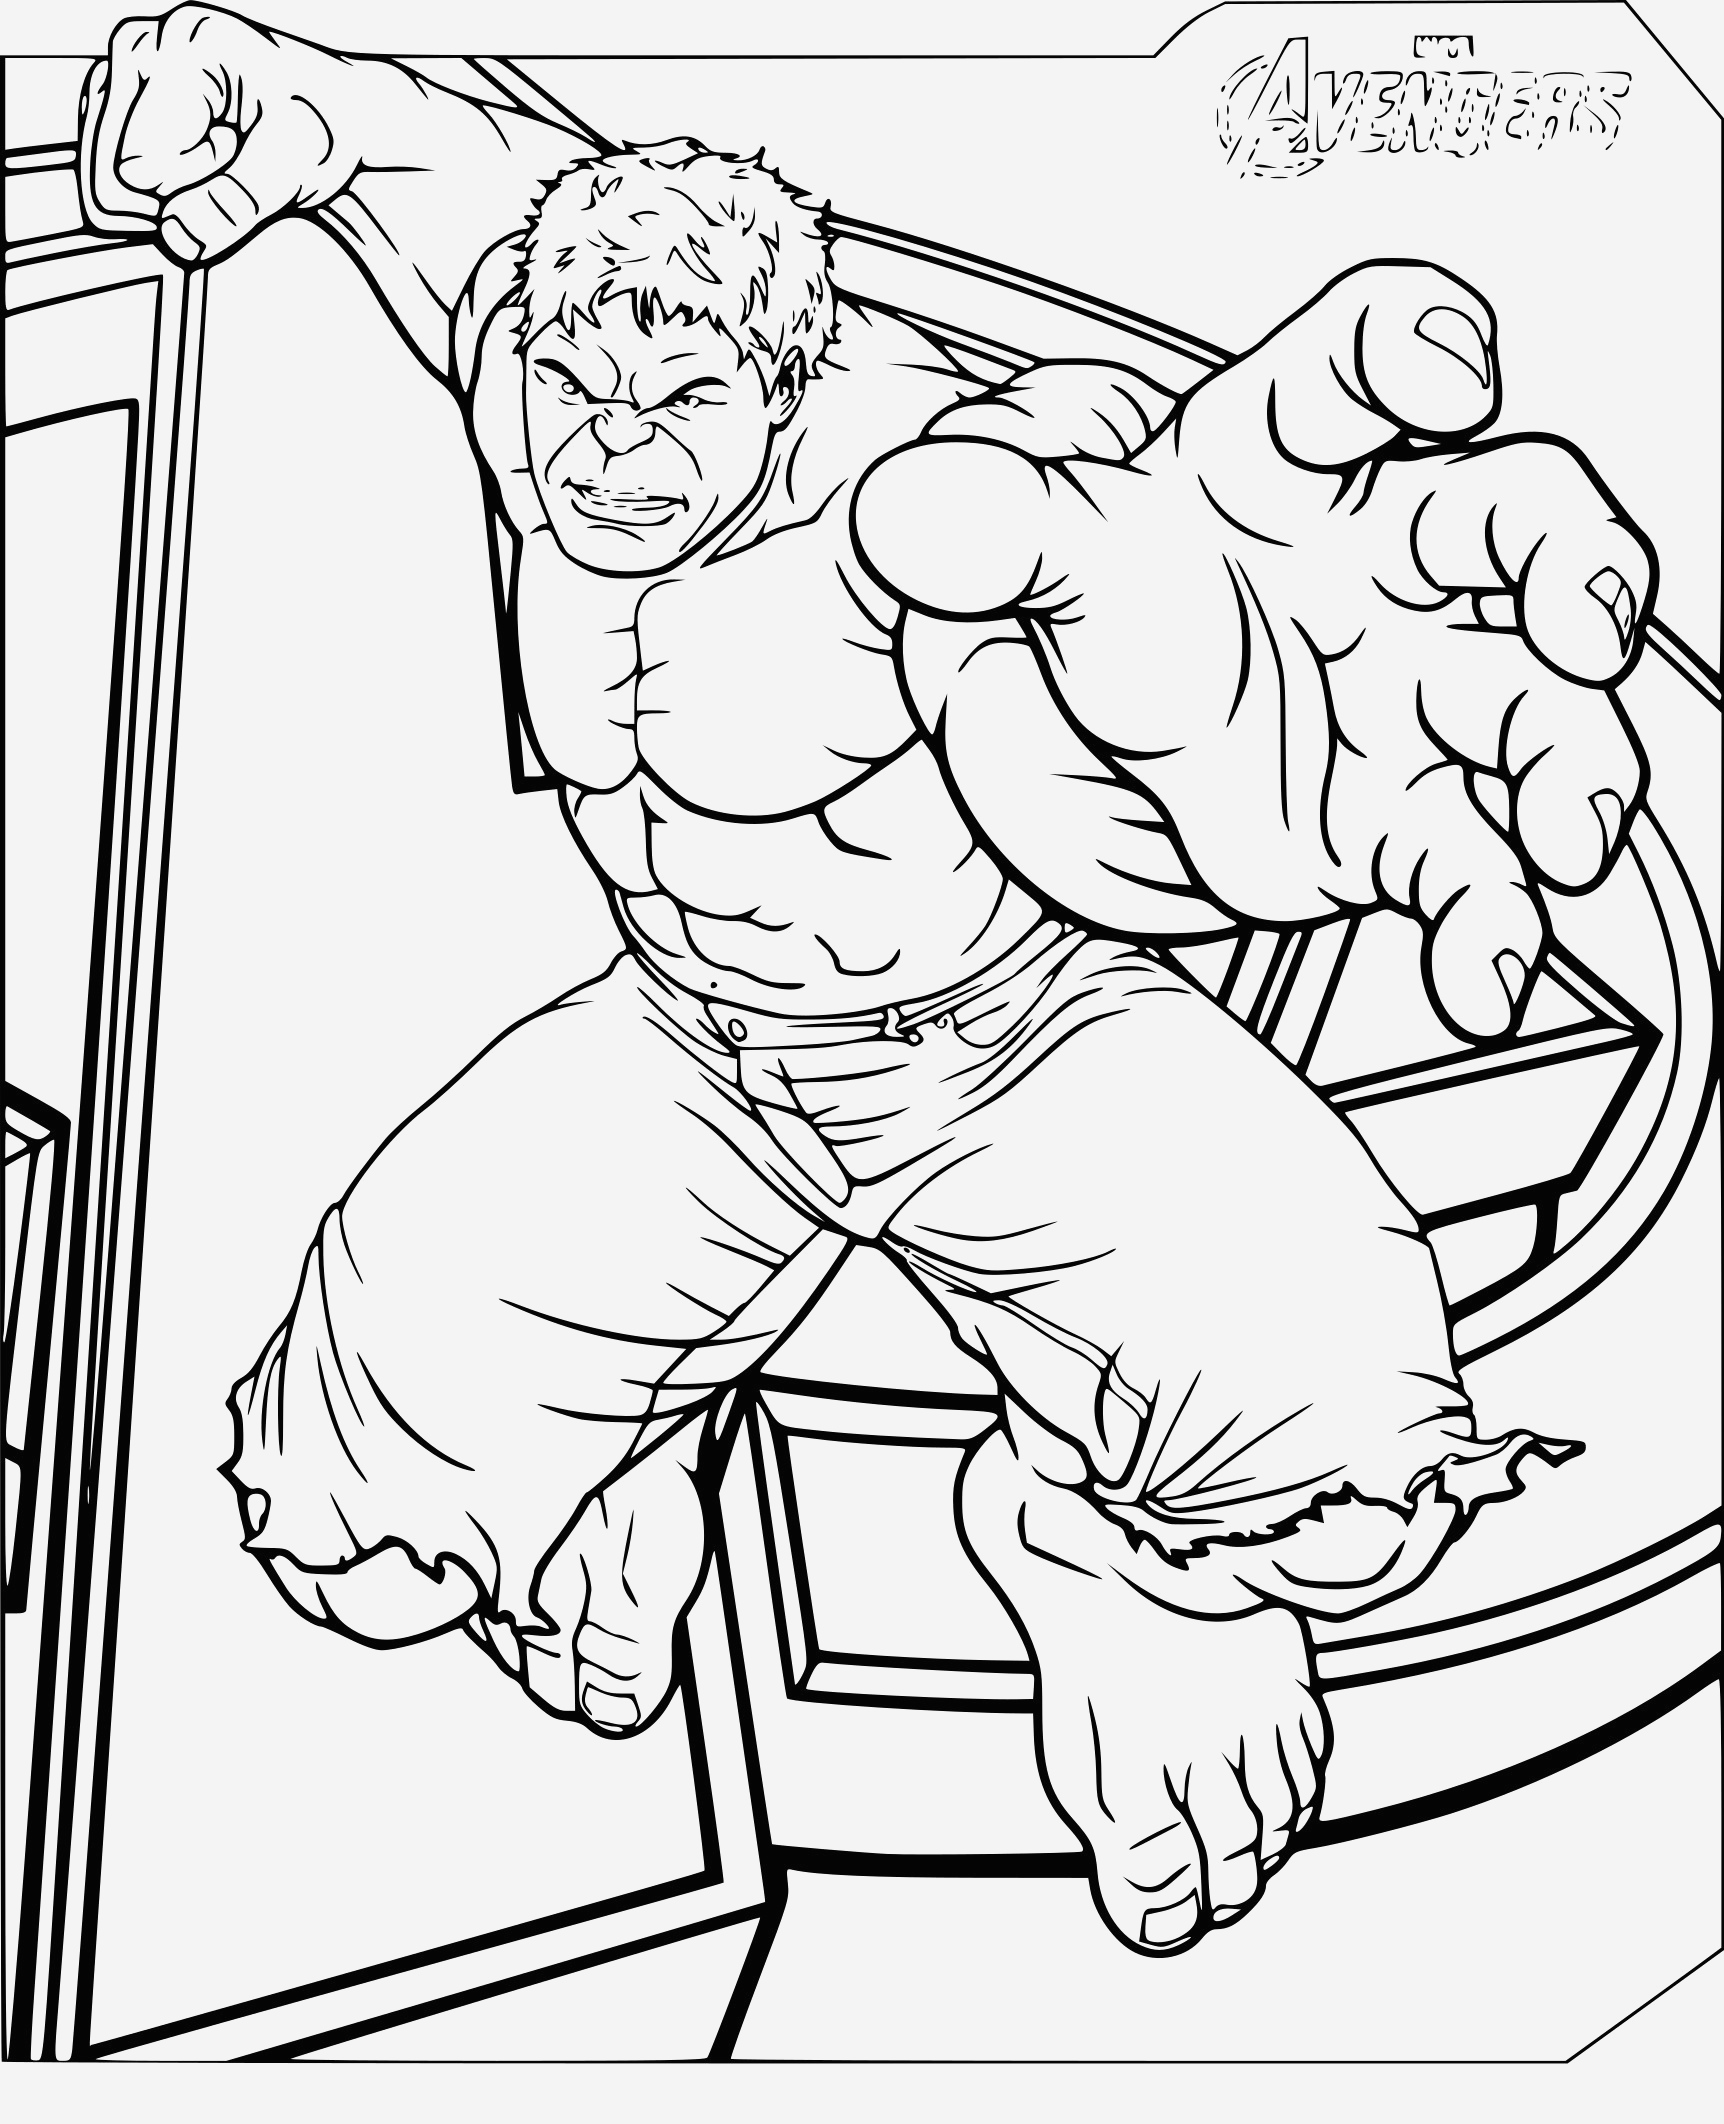 Coloriage Hulk Beautiful Coloriage Hulk Avengers   Imprimer Sur Coloriages Fo Of Coloriage Hulk